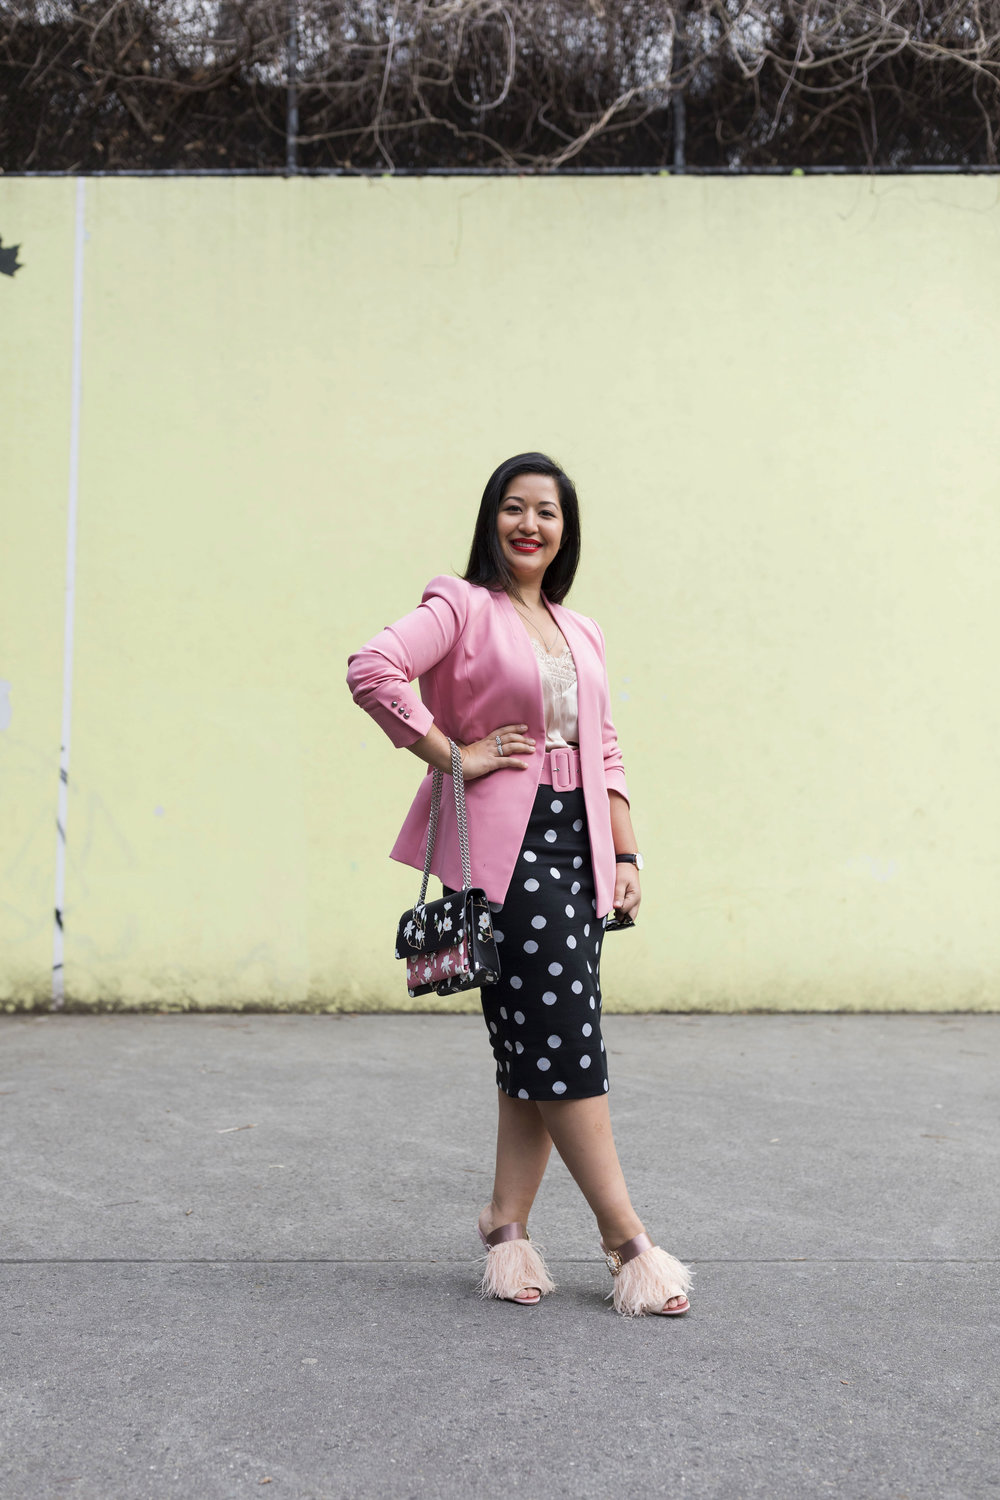 Krity S x Polka Dot and Pink Work Outfit7.jpg